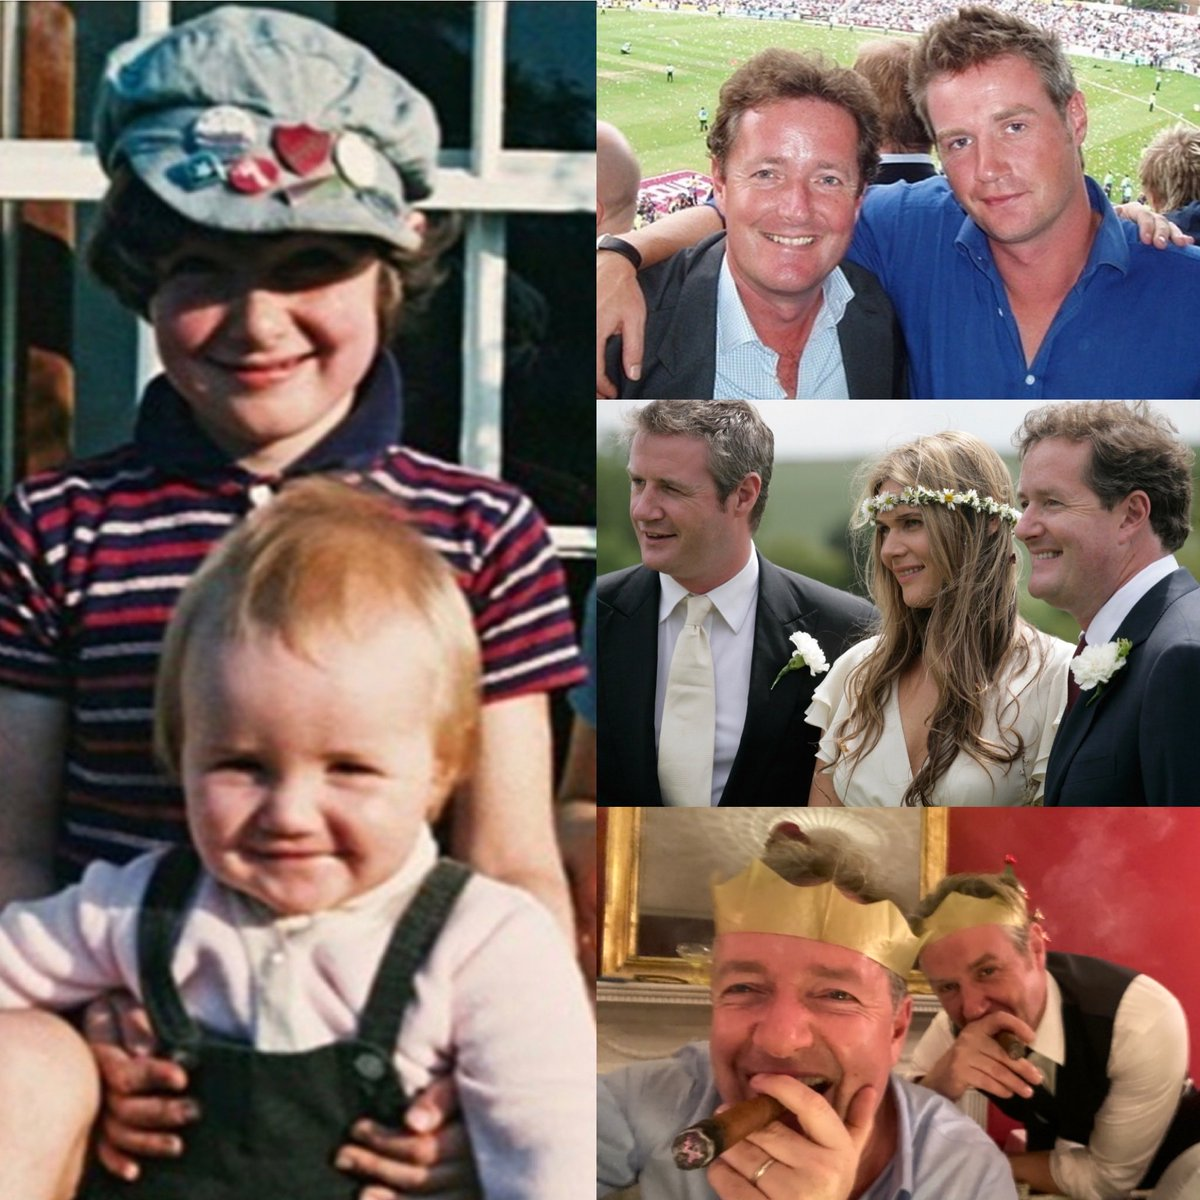 Quite a sobering moment when your 'little bro' turns 50… 😳 .. Congrats on reaching the big half century @RPMorgan2014 - and thanks for being such a ferociously loyal brother. 👍